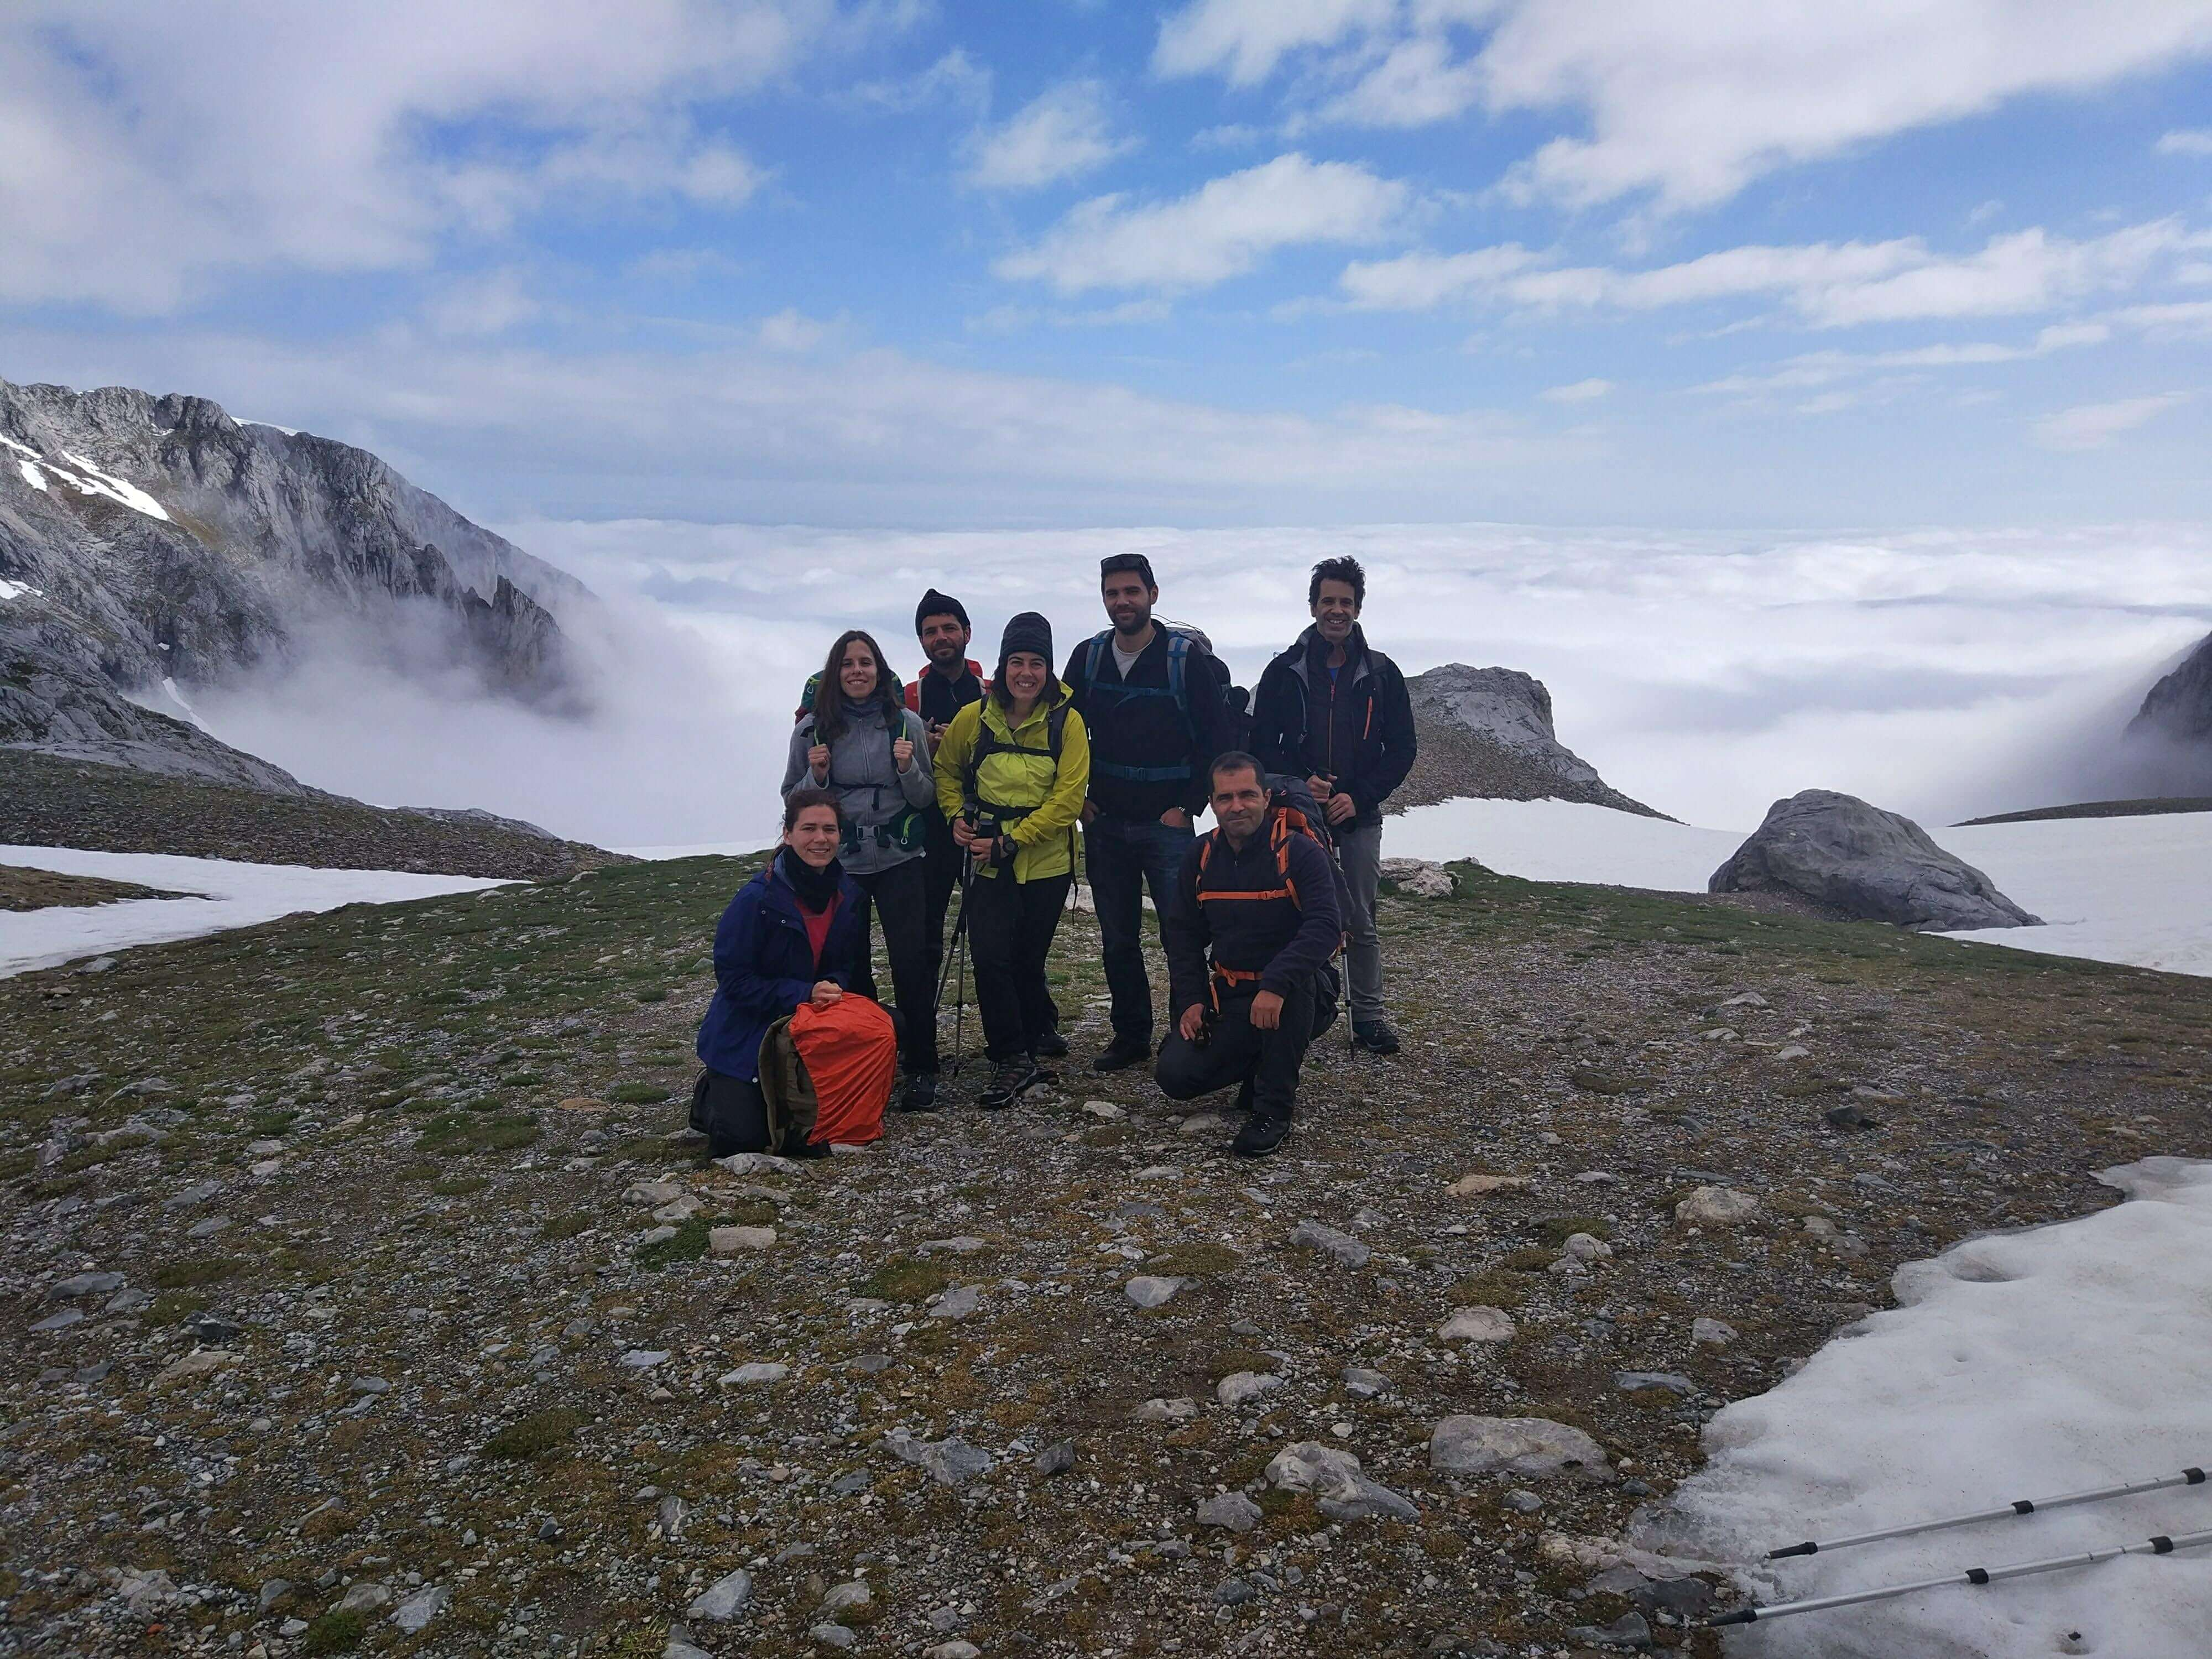 Photo with friends (Picos, Europe)